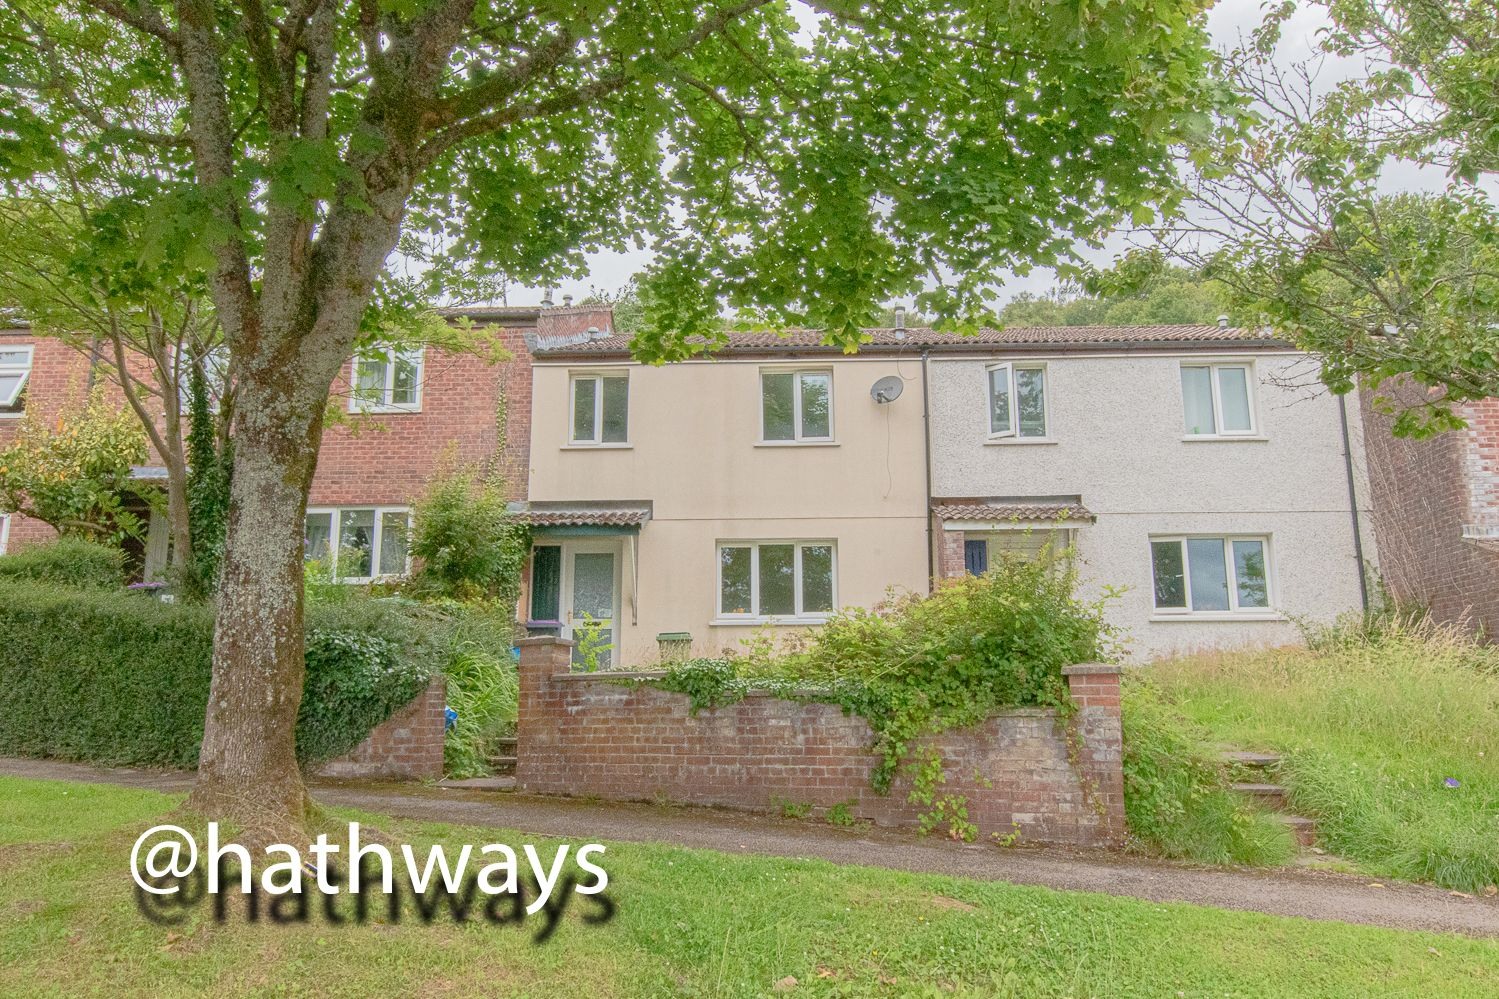 3 bed house to rent in Rhymney Court, NP44